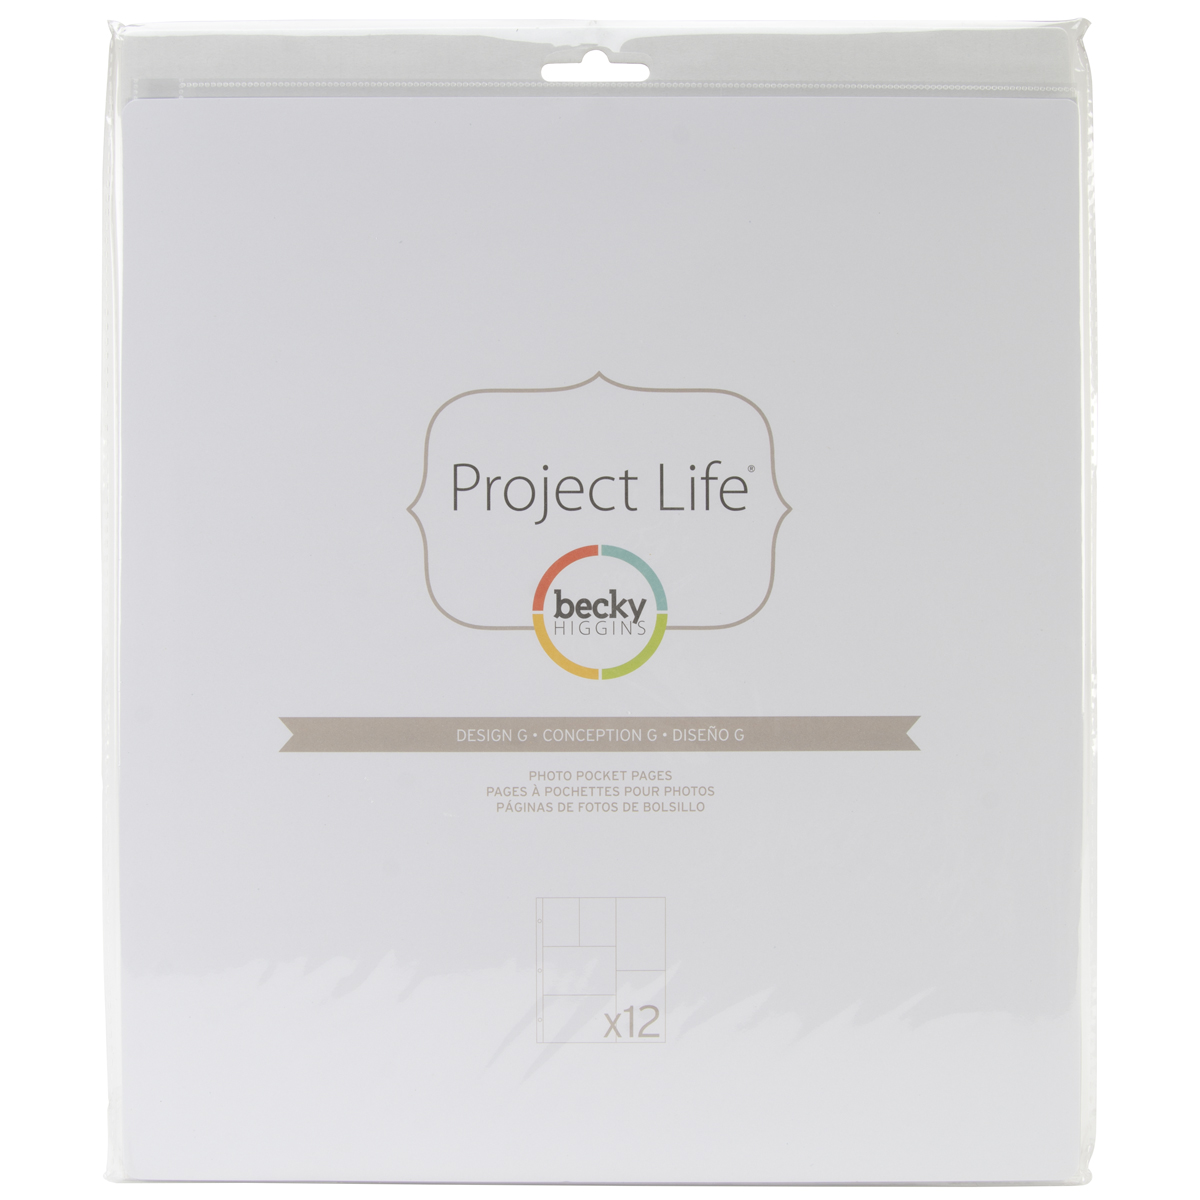 Project Life Photo Pocket Pages 12/Pkg-Design G